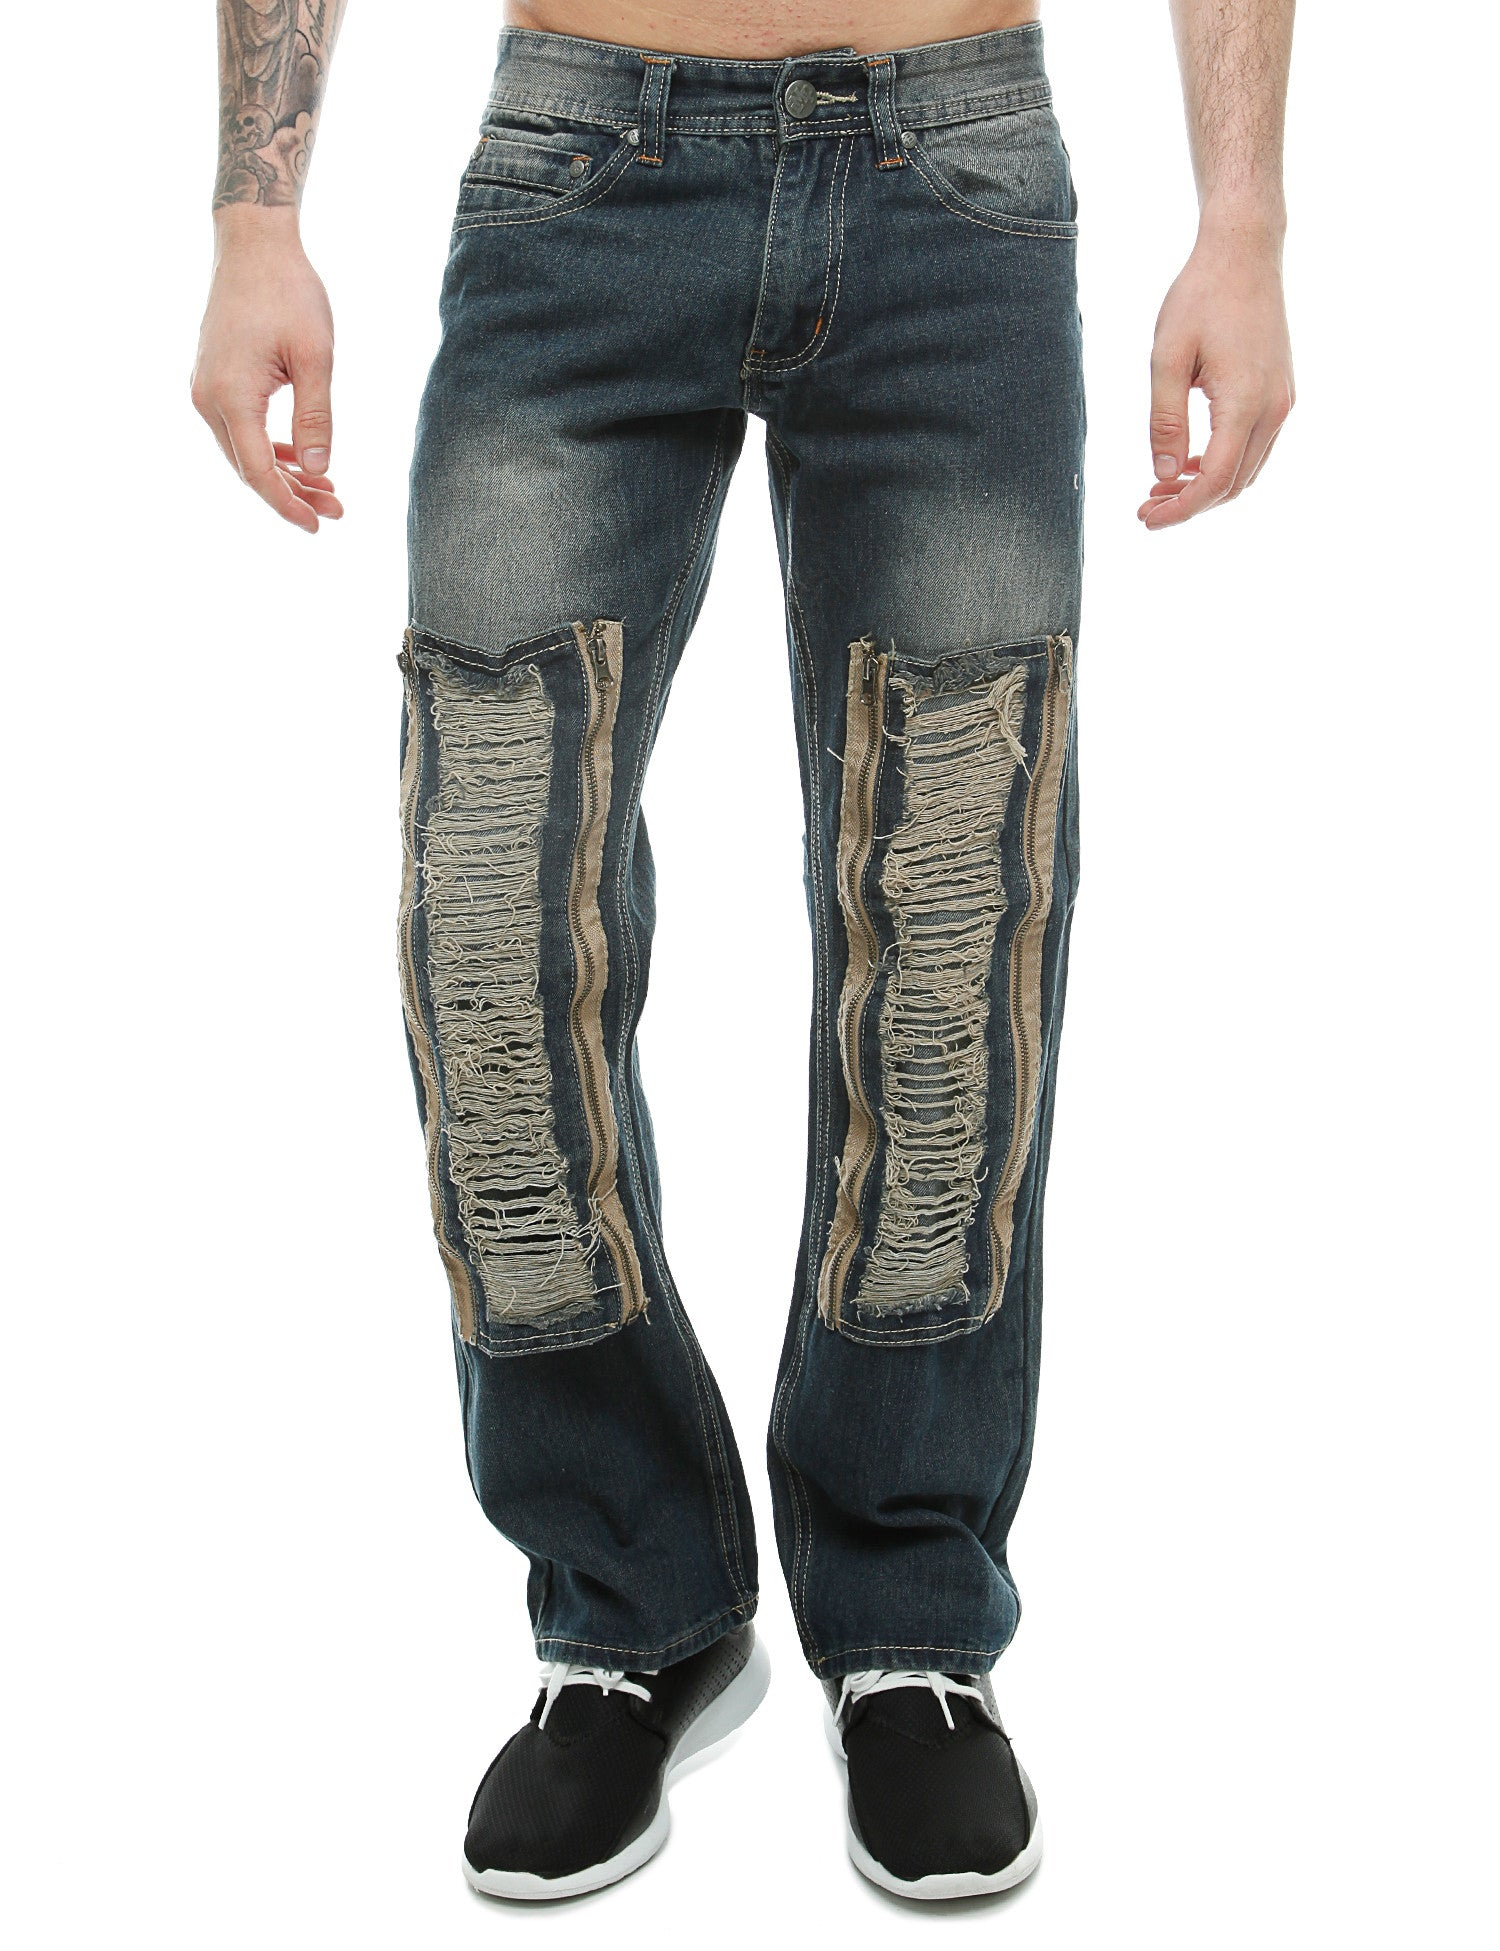 Imperious Rip W/ Zipper Patched Jeans Vintage Blue